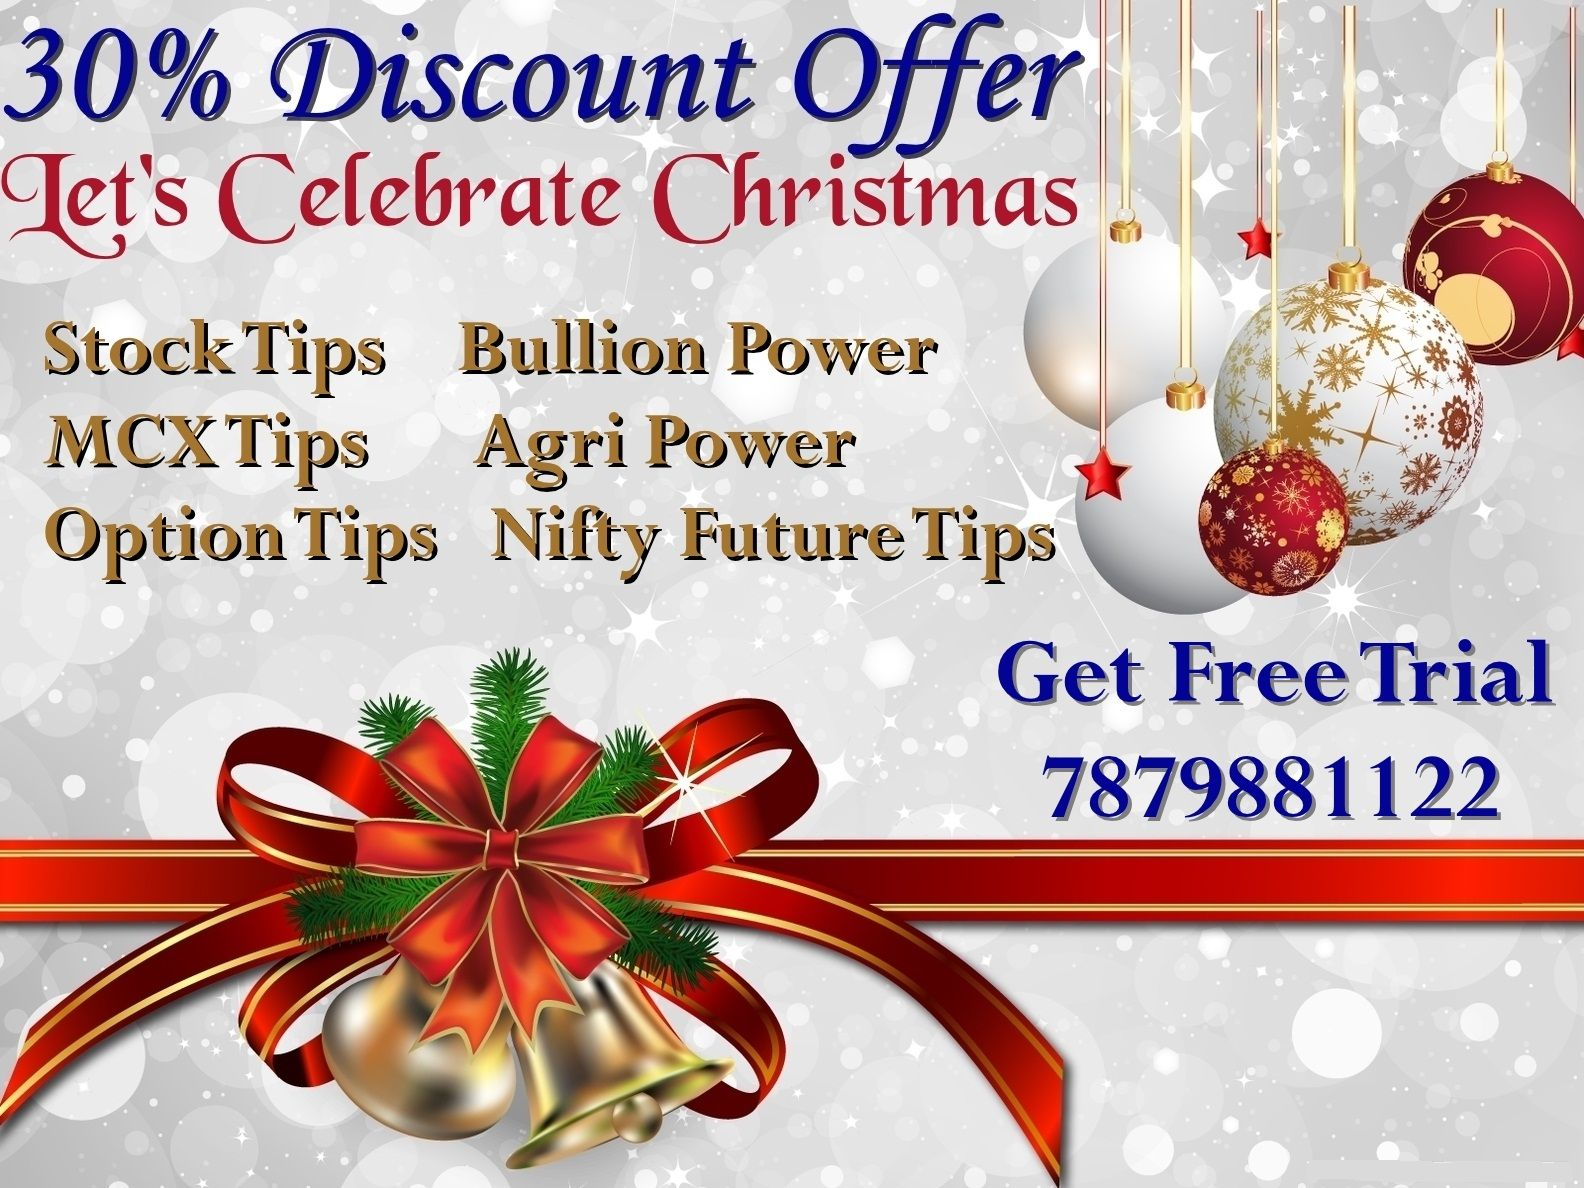 Join MarketMagnify team and get 2 days free trial on stock market ...